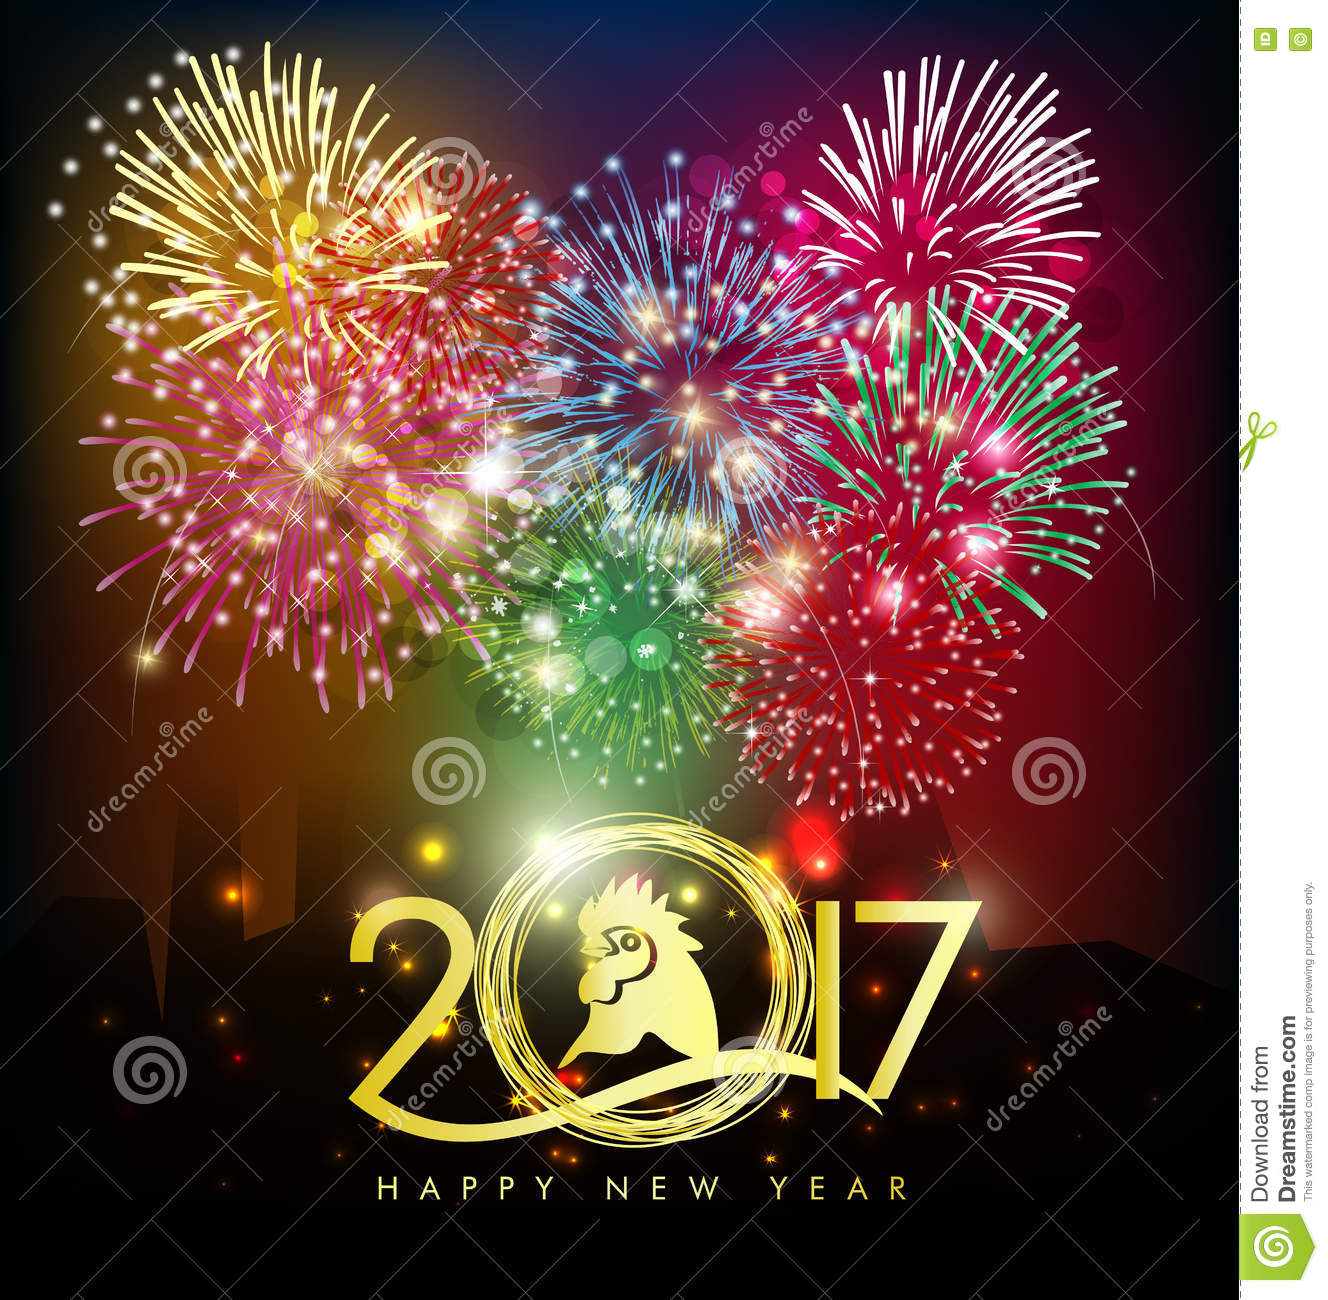 Happy new year greeting card 2017 stock photo image of decoration download happy new year greeting card 2017 stock photo image of decoration bird m4hsunfo